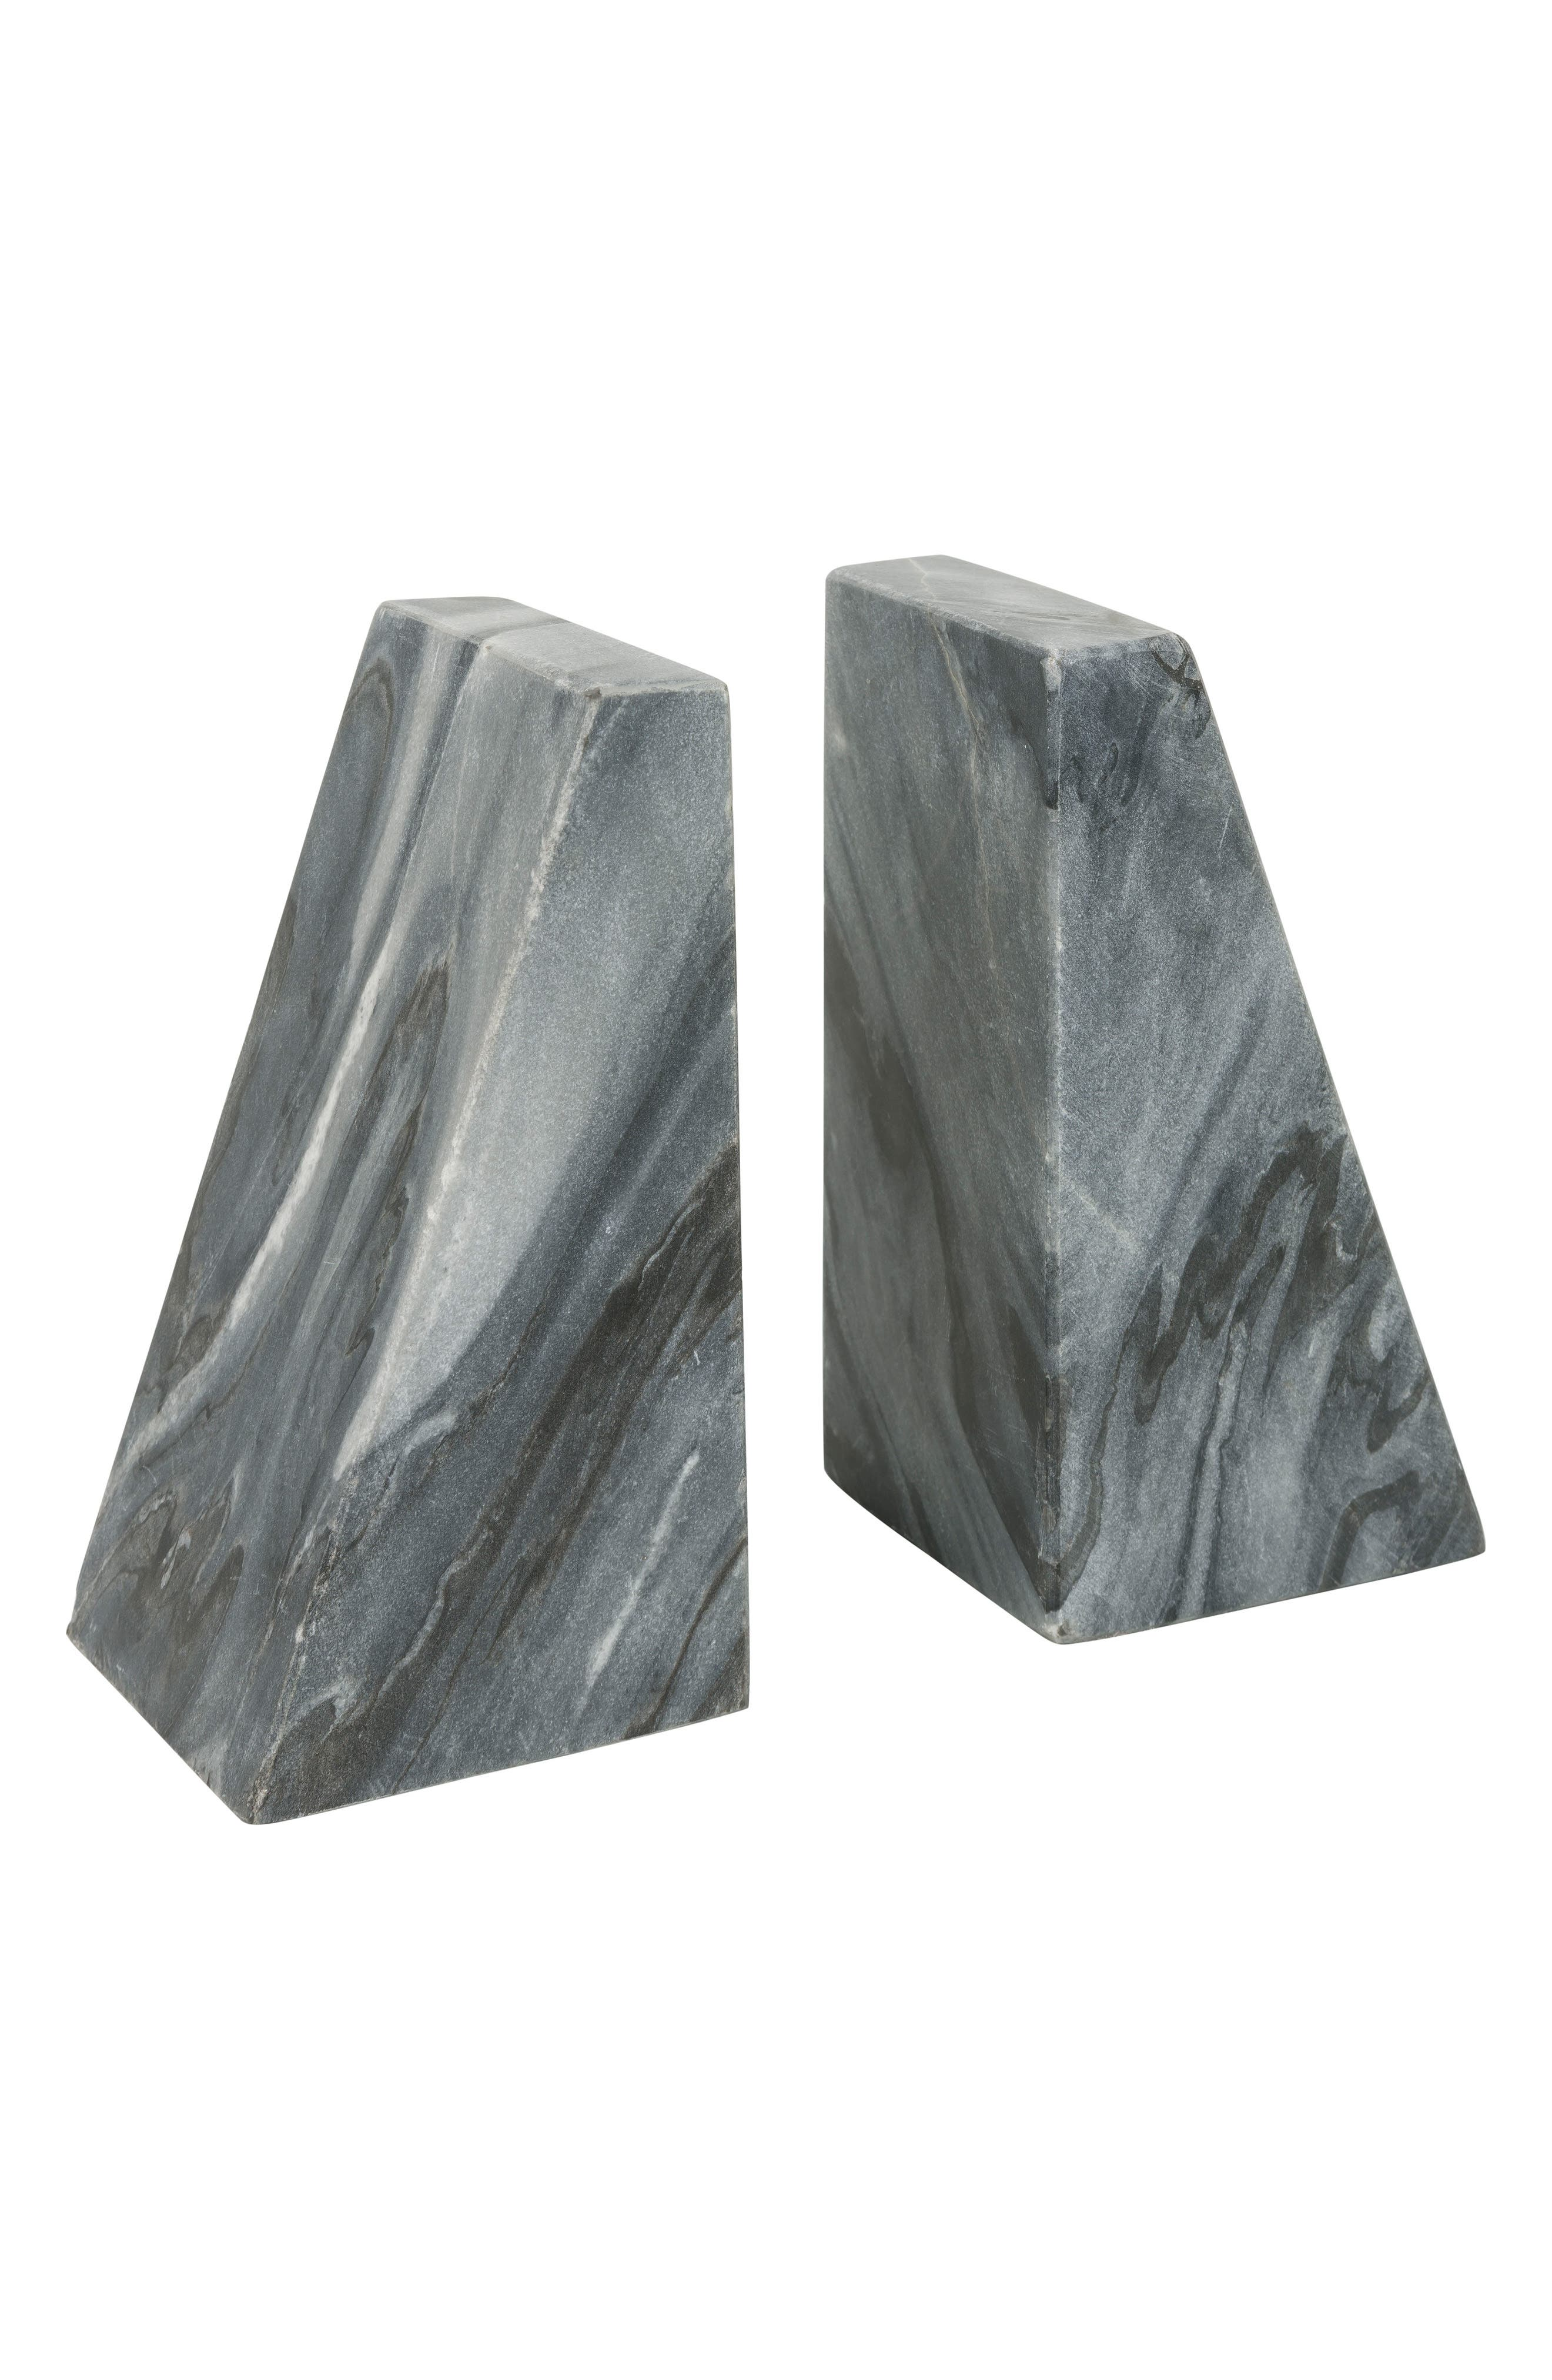 Mars Marble Bookends,                             Main thumbnail 1, color,                             020